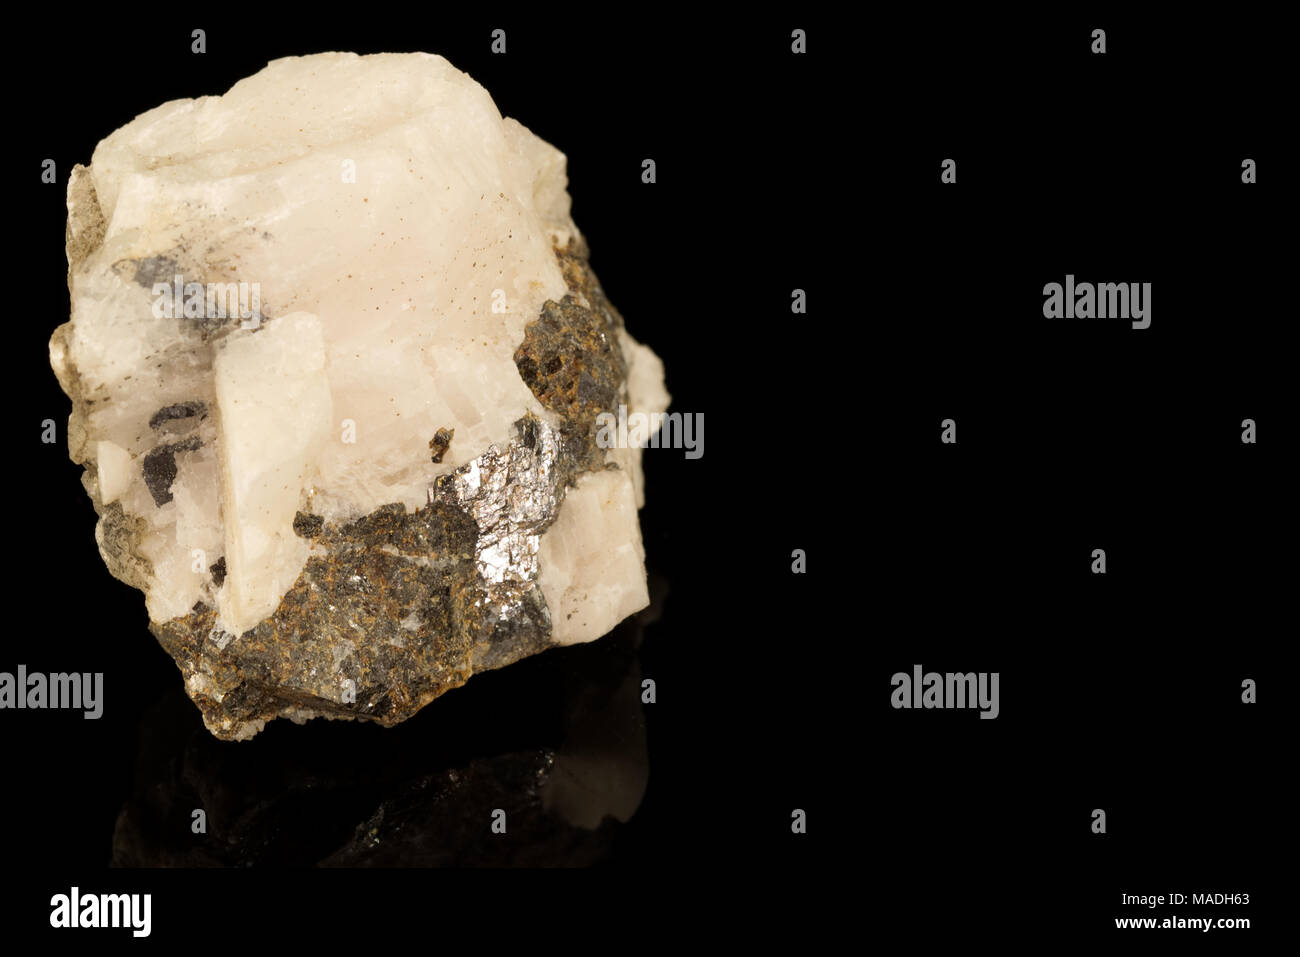 Sphalerite zinc mineral ore isolated on black background. Zinc sulfide in crystalline form. Rocks and minerals - Stock Image